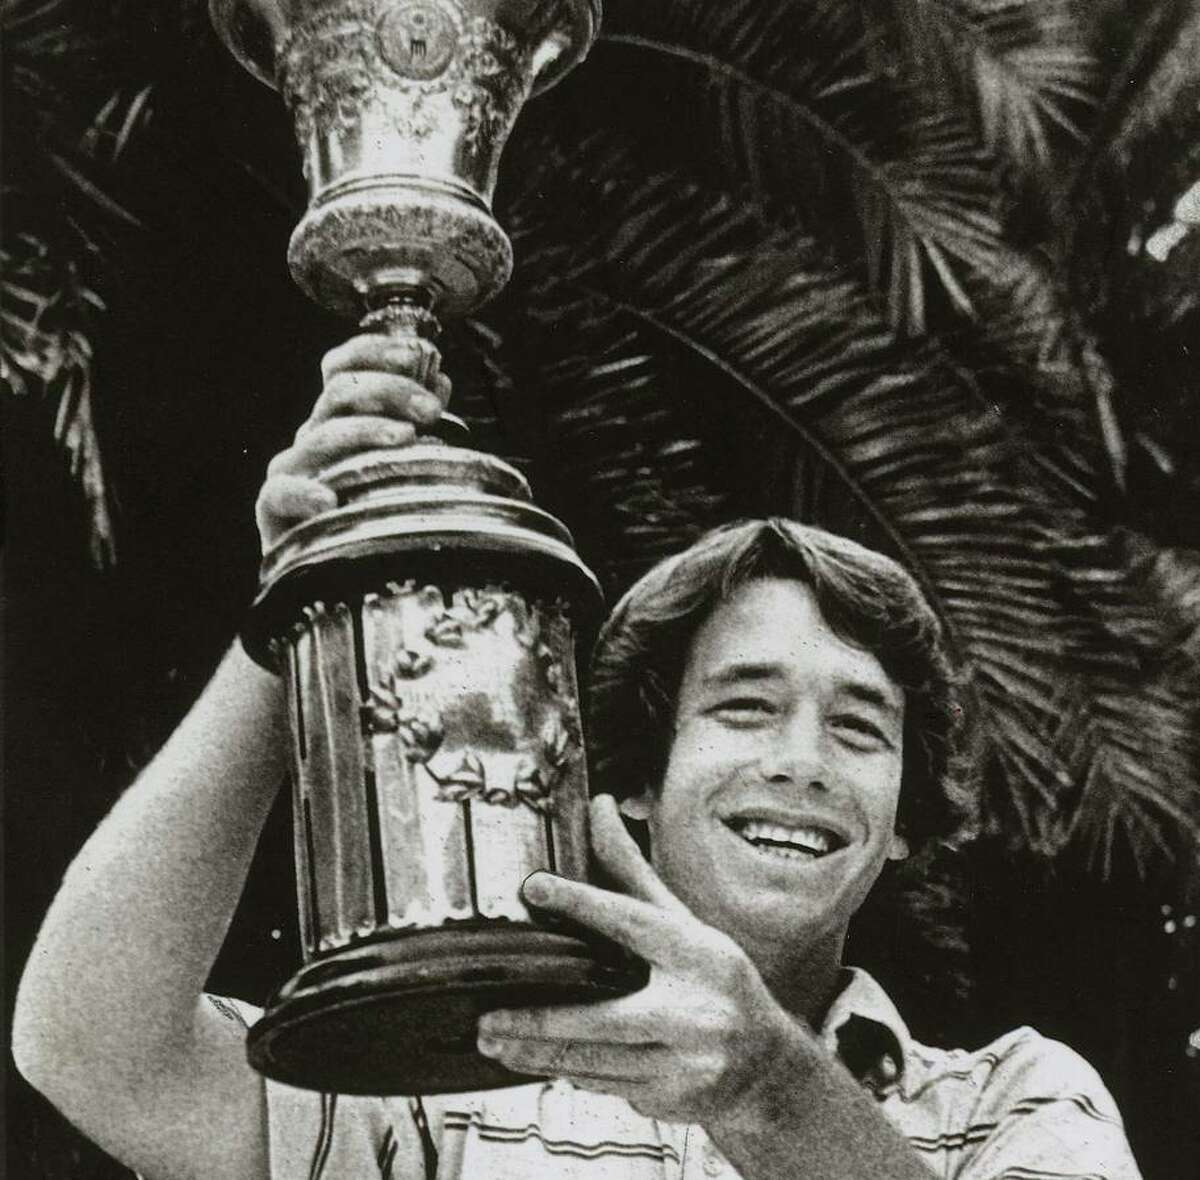 Nathaniel Crosby, then 19, poses with the trophy after winning the 1981 U.S. Amateur at the Olympic Club in San Francisco.